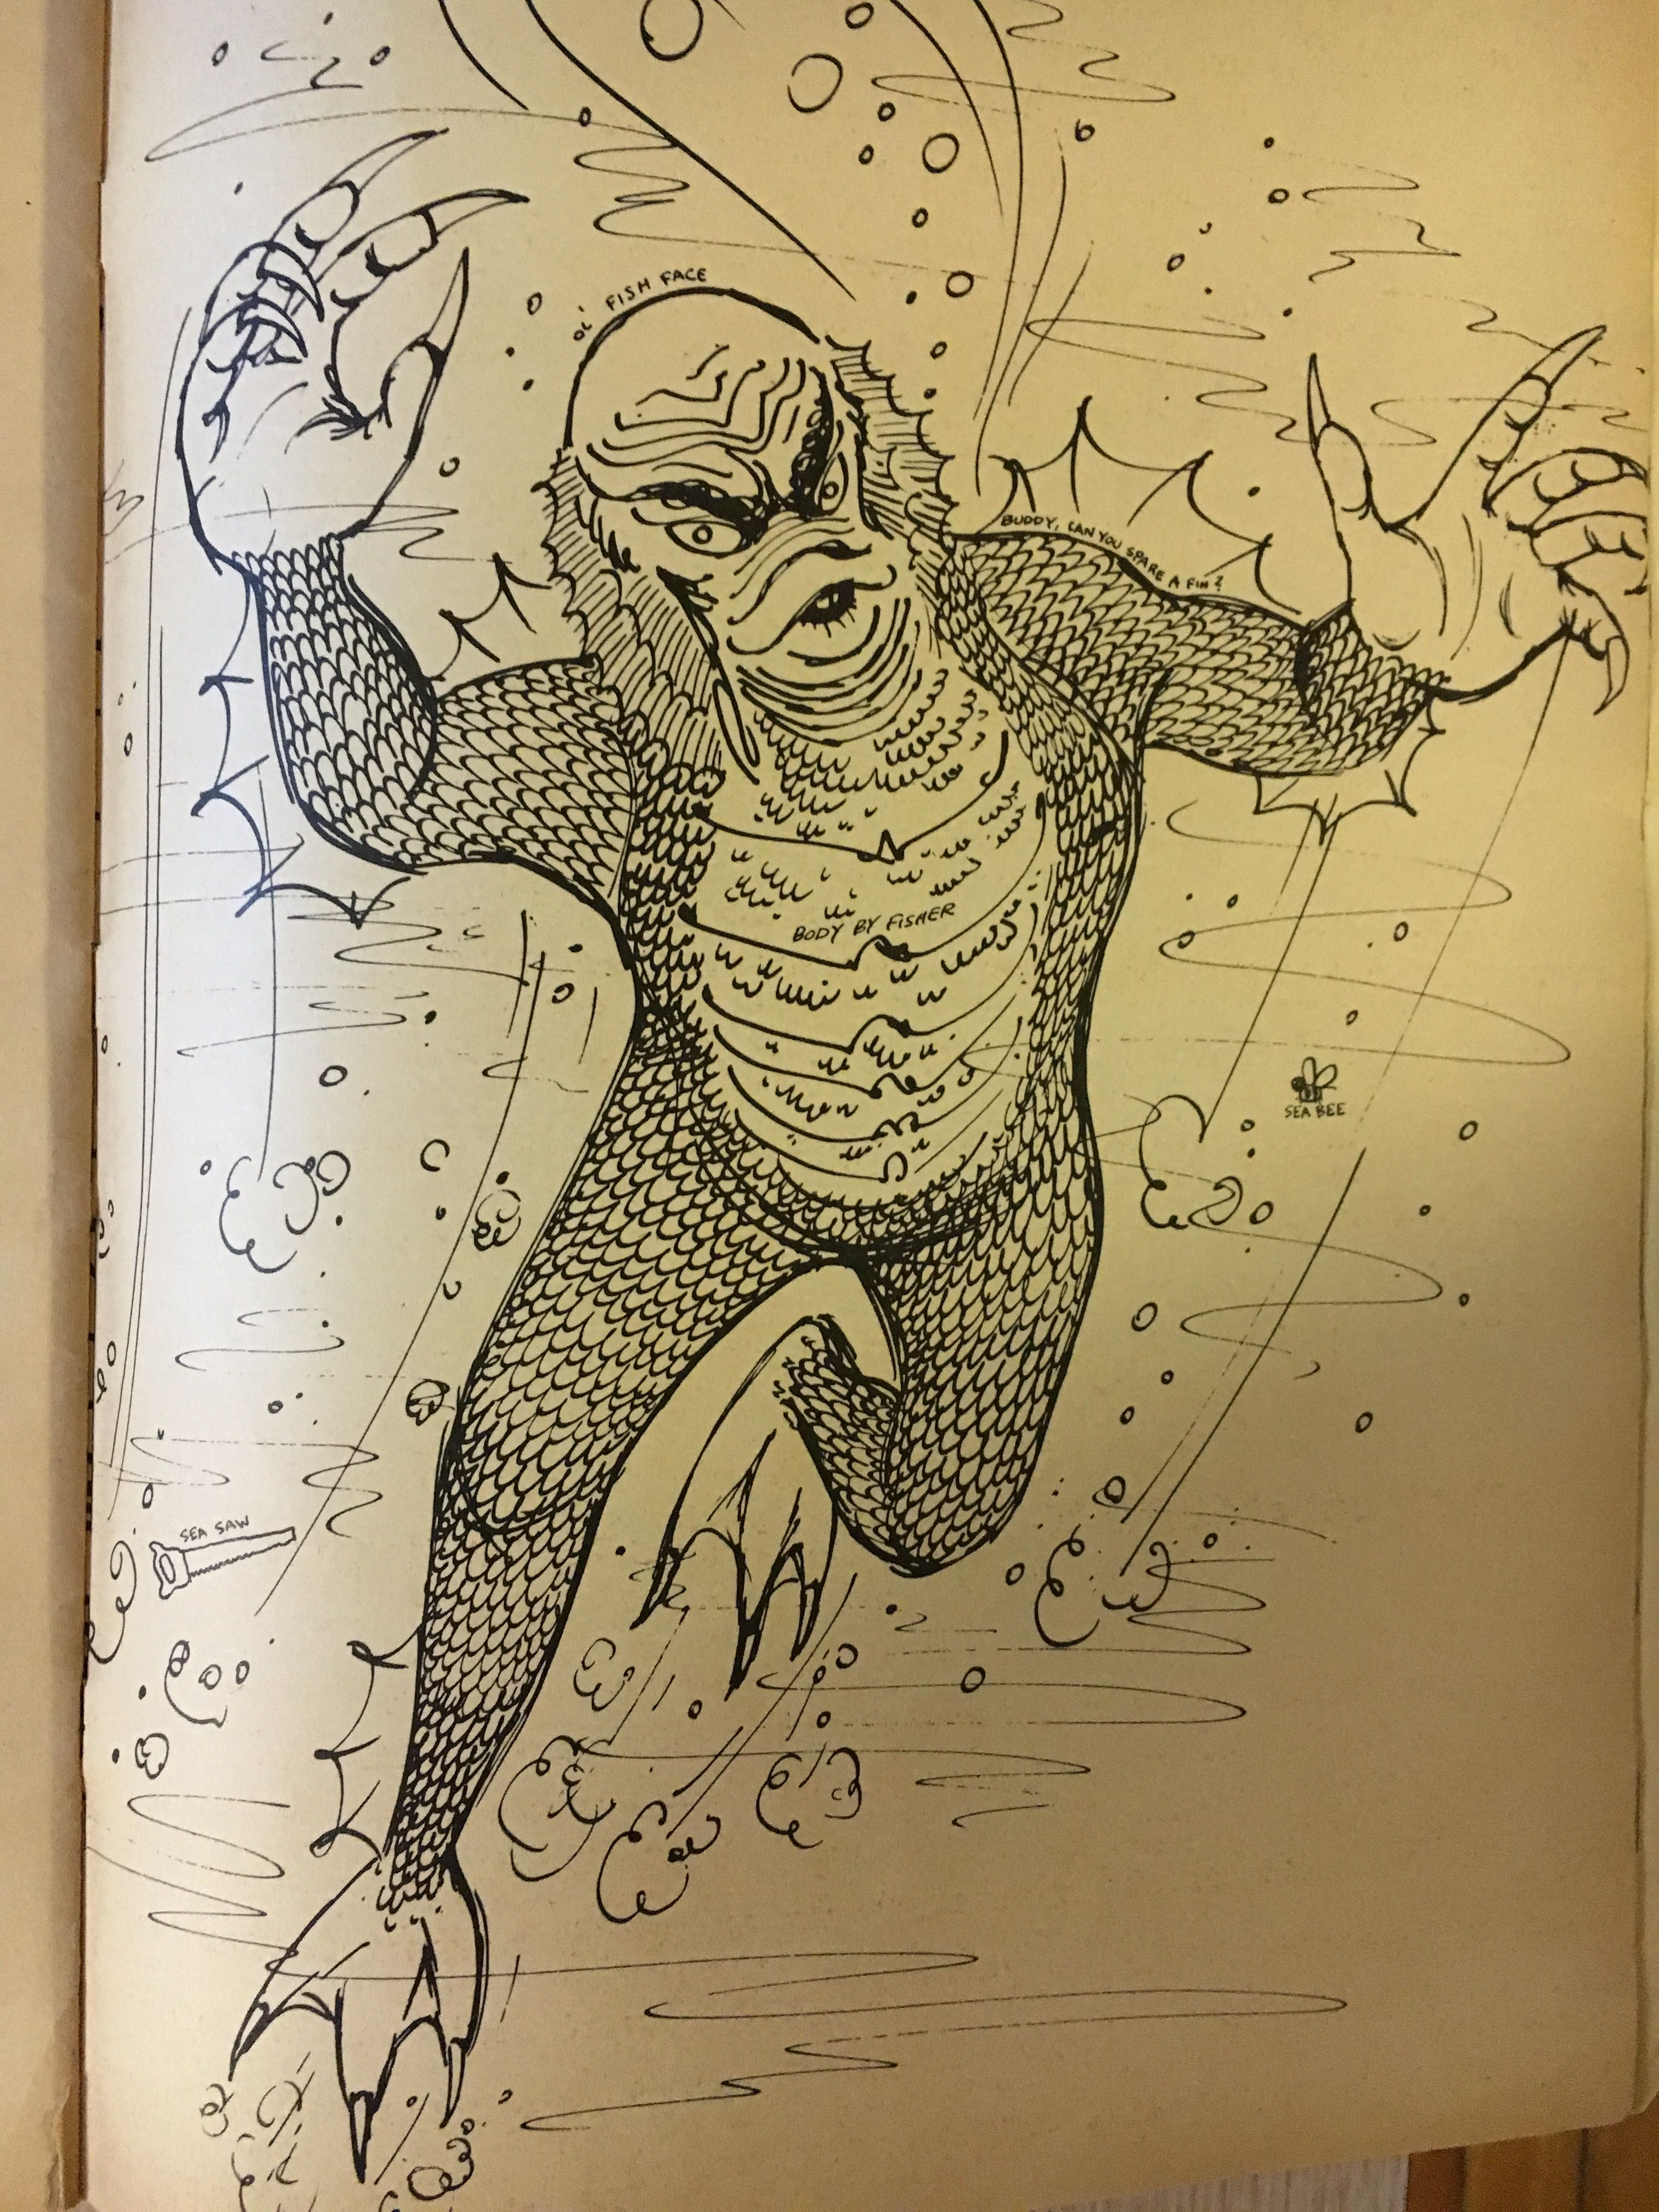 Creature From The Black Lagoon Coloring Page Cool Ghoul Coloring Book 1964 Vintage Coloring Books Colored Pencil Drawing Coloring Books